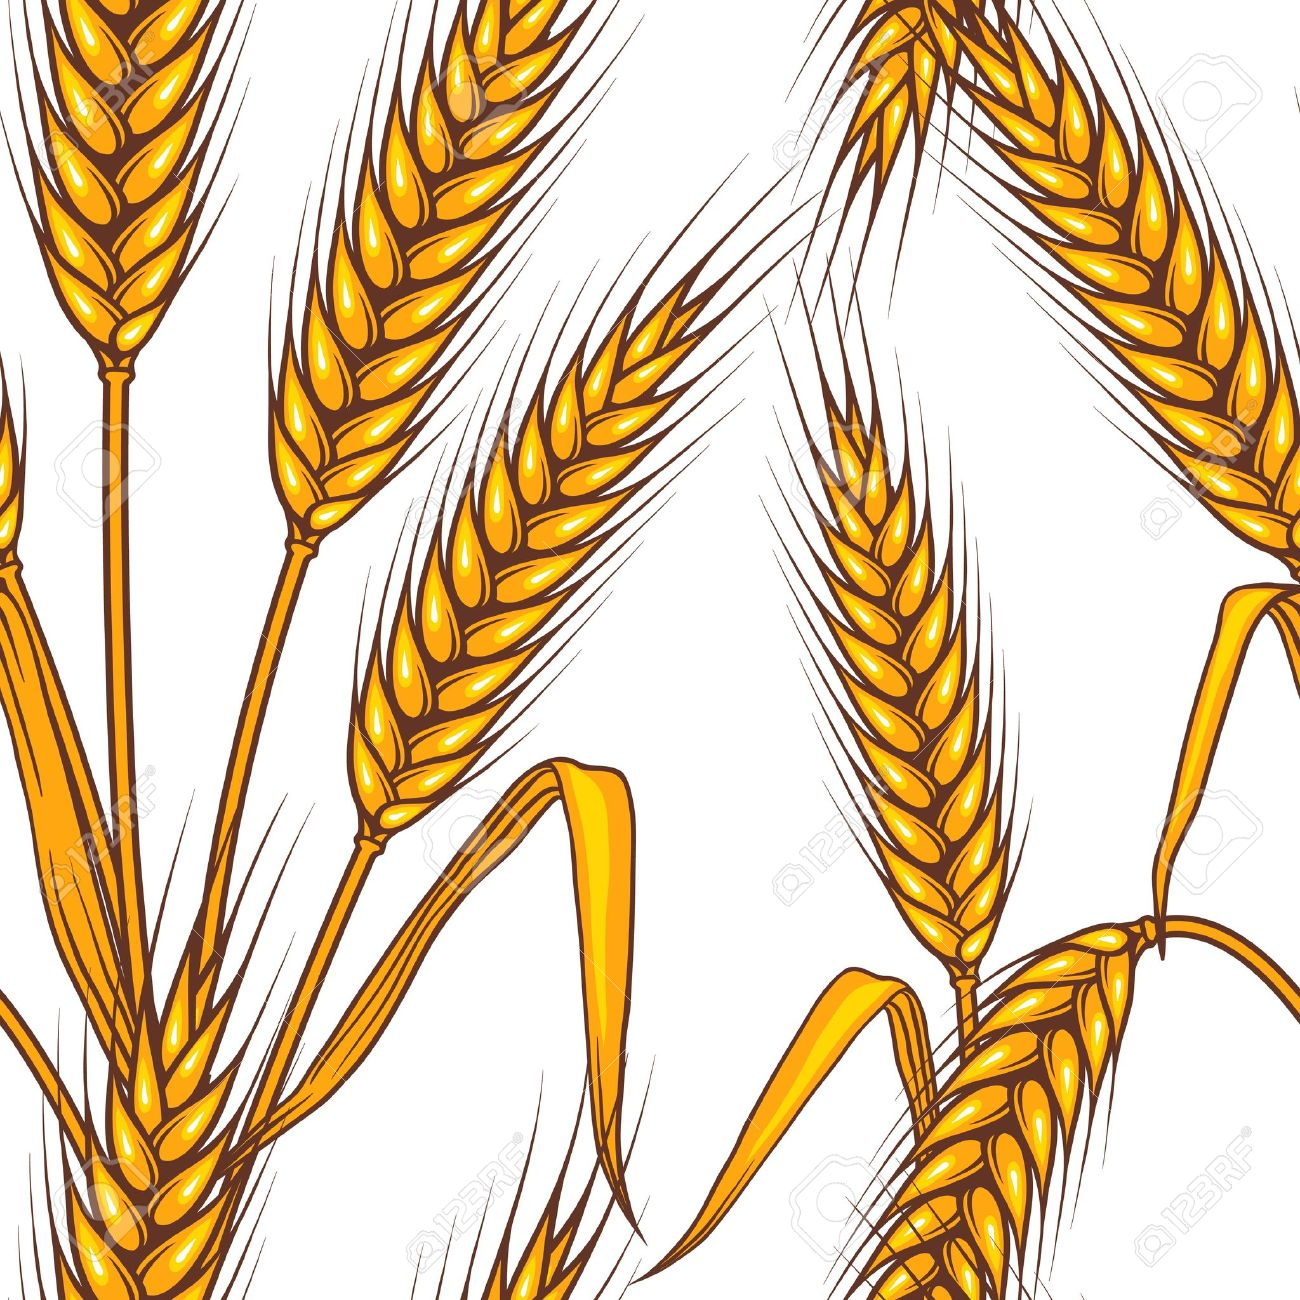 Barley clipart #11, Download drawings